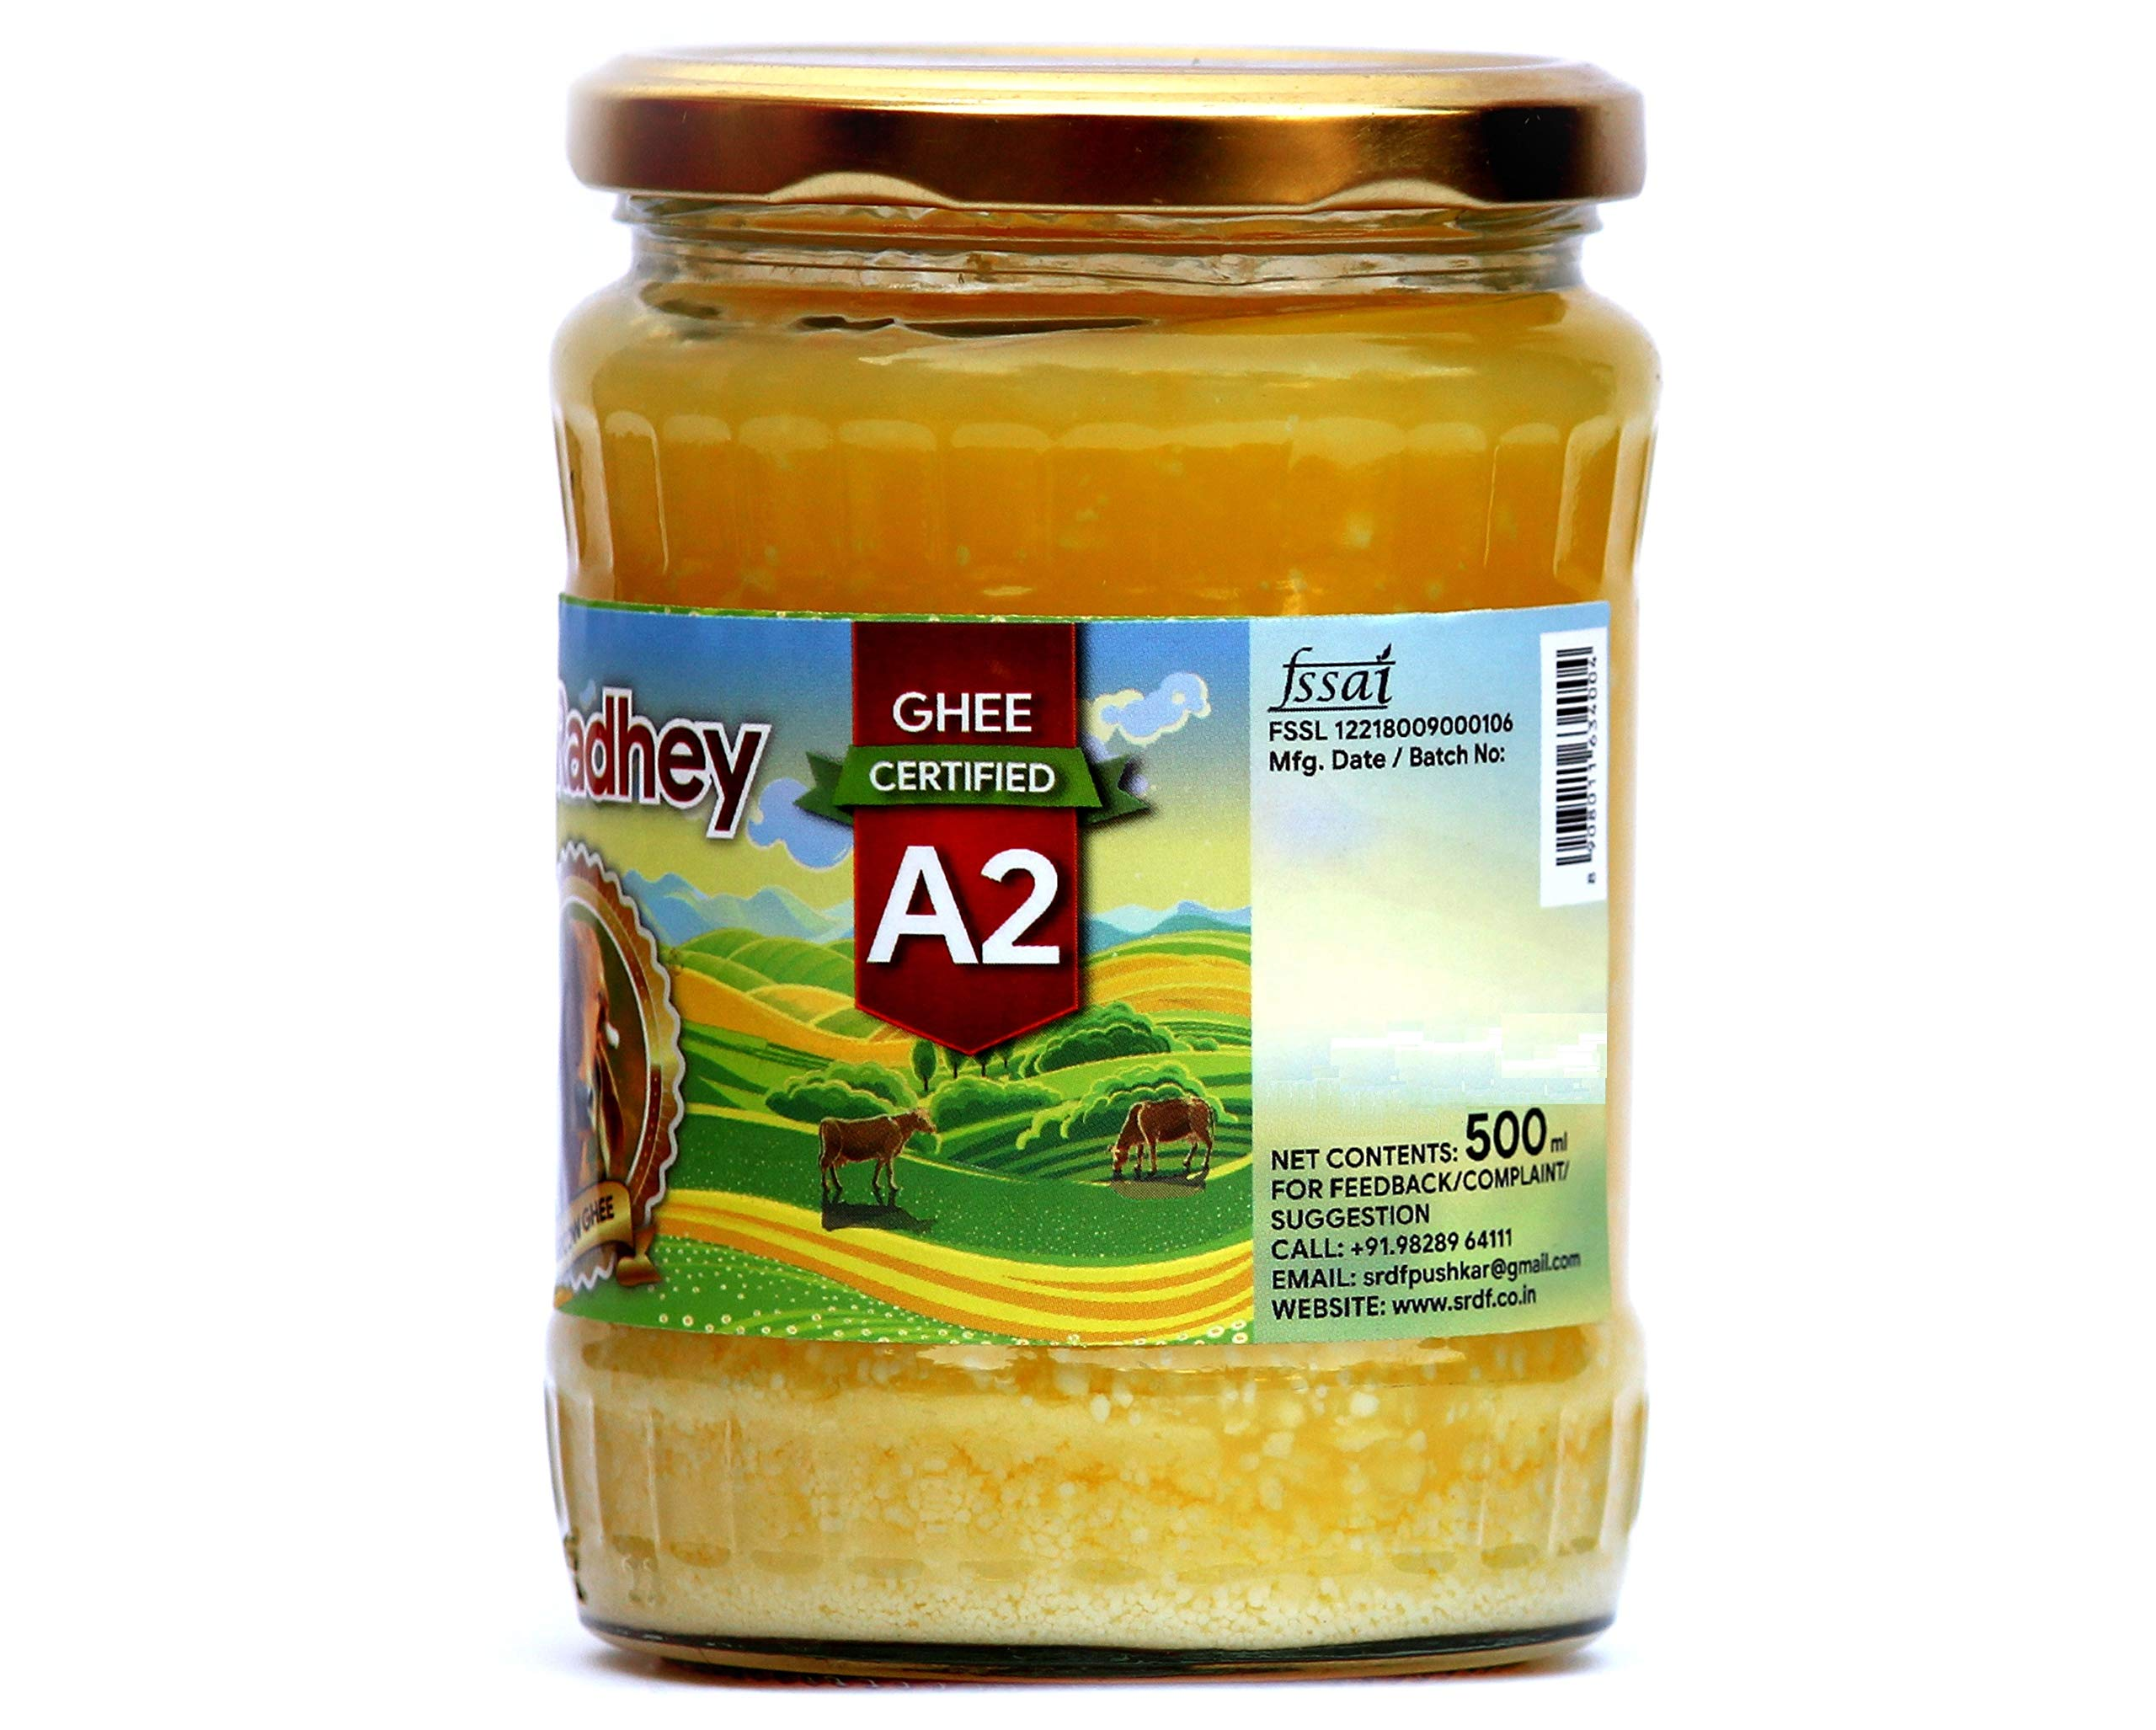 Shree Radhey Certified A2 Gir Cow Ghee - Clarified Butter - 100 % Grass Fed- (Traditionaly Churned) 14 oz (400 gm)) by Shree Radhey (Image #3)